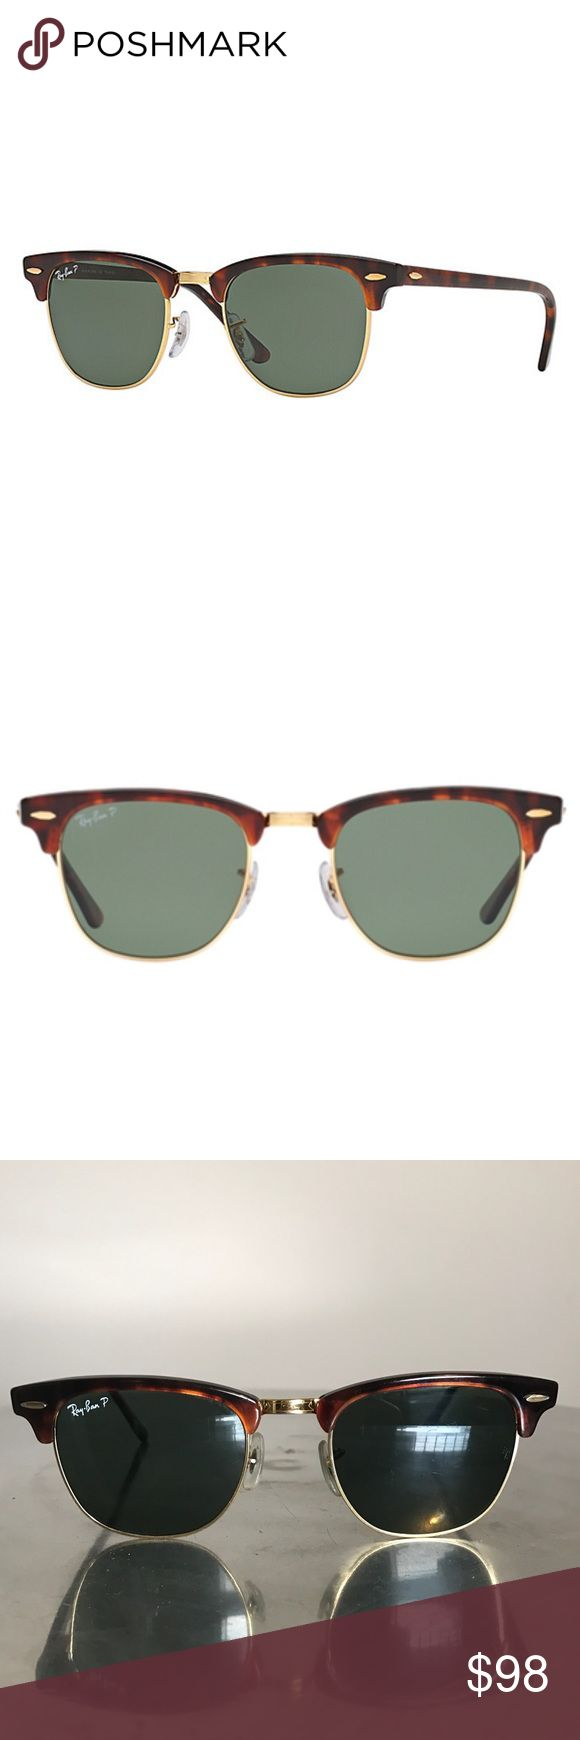 😎 RayBan ClubMaster Sunglasses Ray Ban Rb3016 Clubmaster Tortoise Sunglasses are an icon of heritage styling with their unmissable semi rimless frame shape. Draped in a classic Tortoise pattern ... 990/58 sizing 49/21 .... PreOwned. Scratches on lense but not that you can't see through them. Pretty good Condition. No case Ray-Ban Accessories Sunglasses